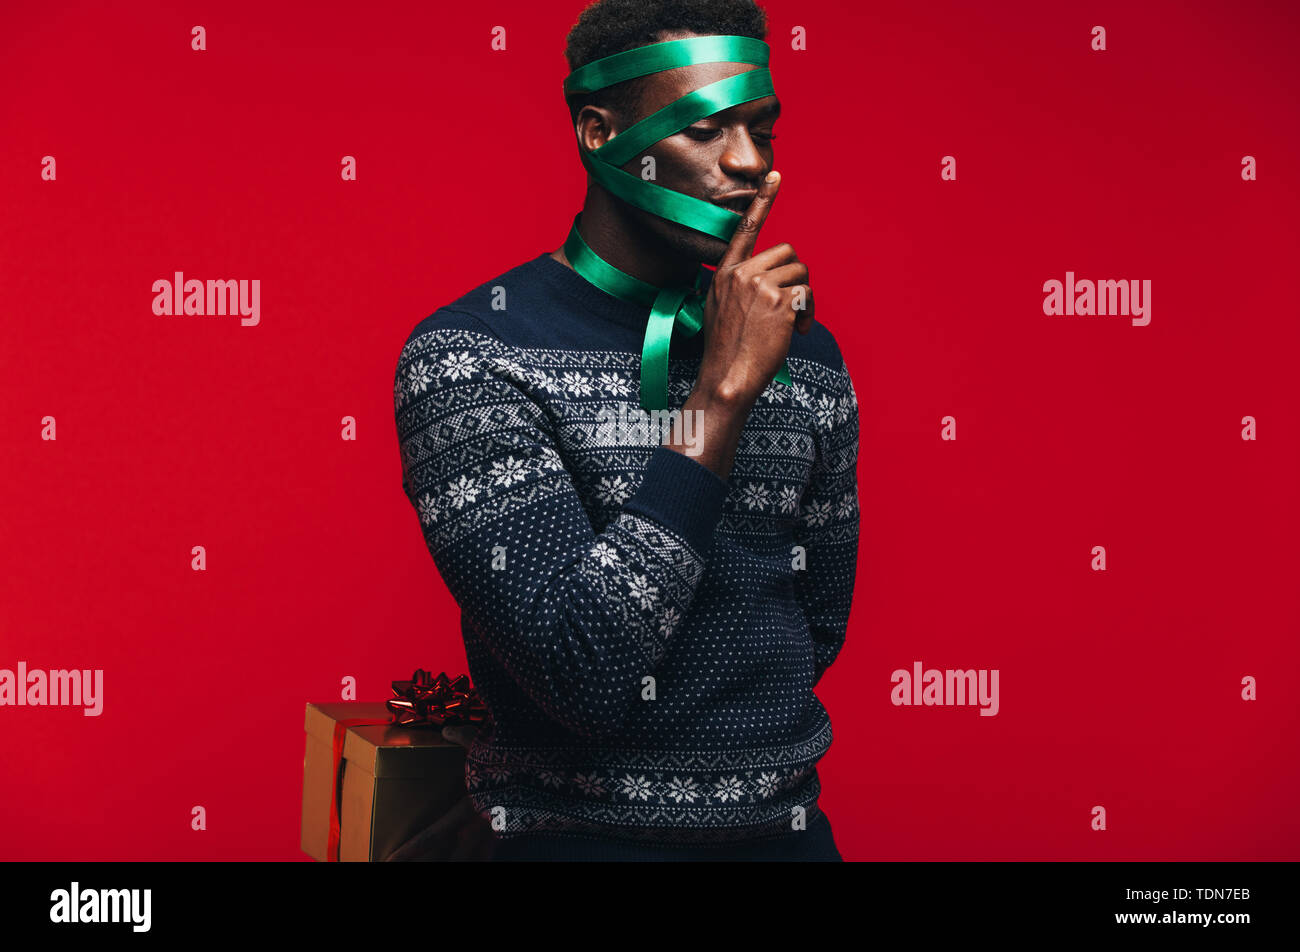 African guy wrapped in a ribbon holding a gift box and gesturing silence. Man wrapped as a gift on red background. - Stock Image